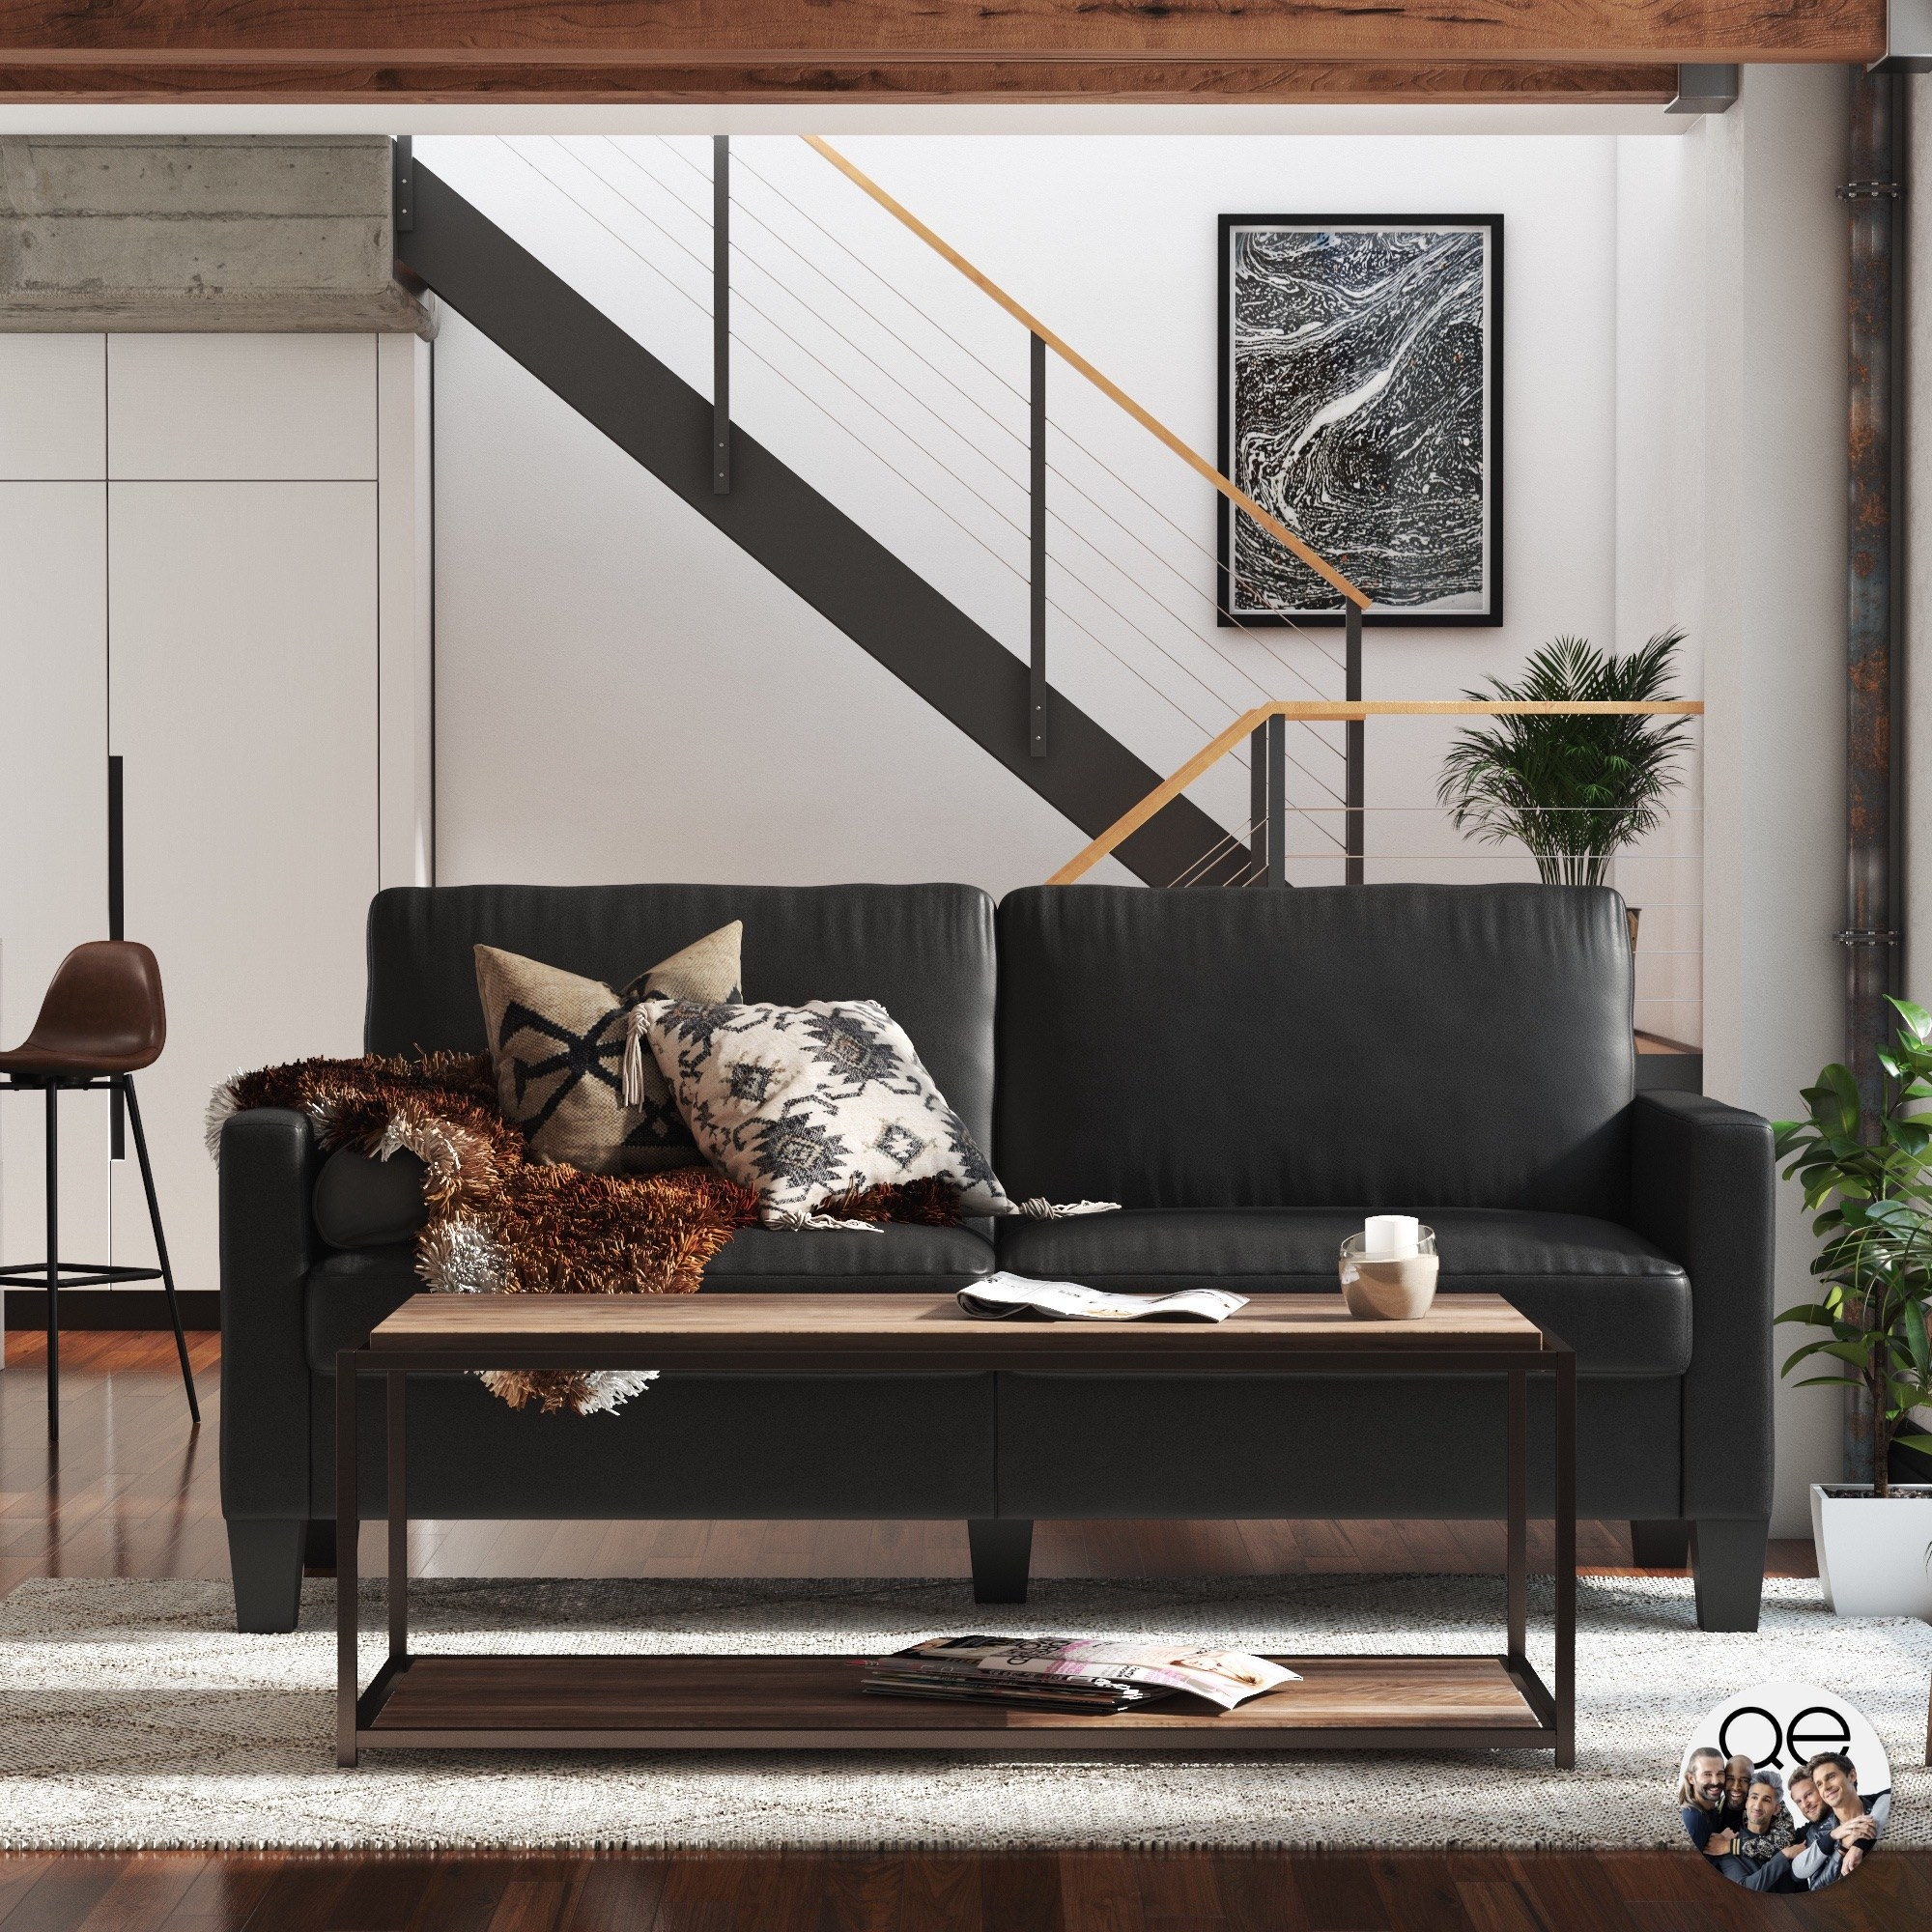 A black couch in a home